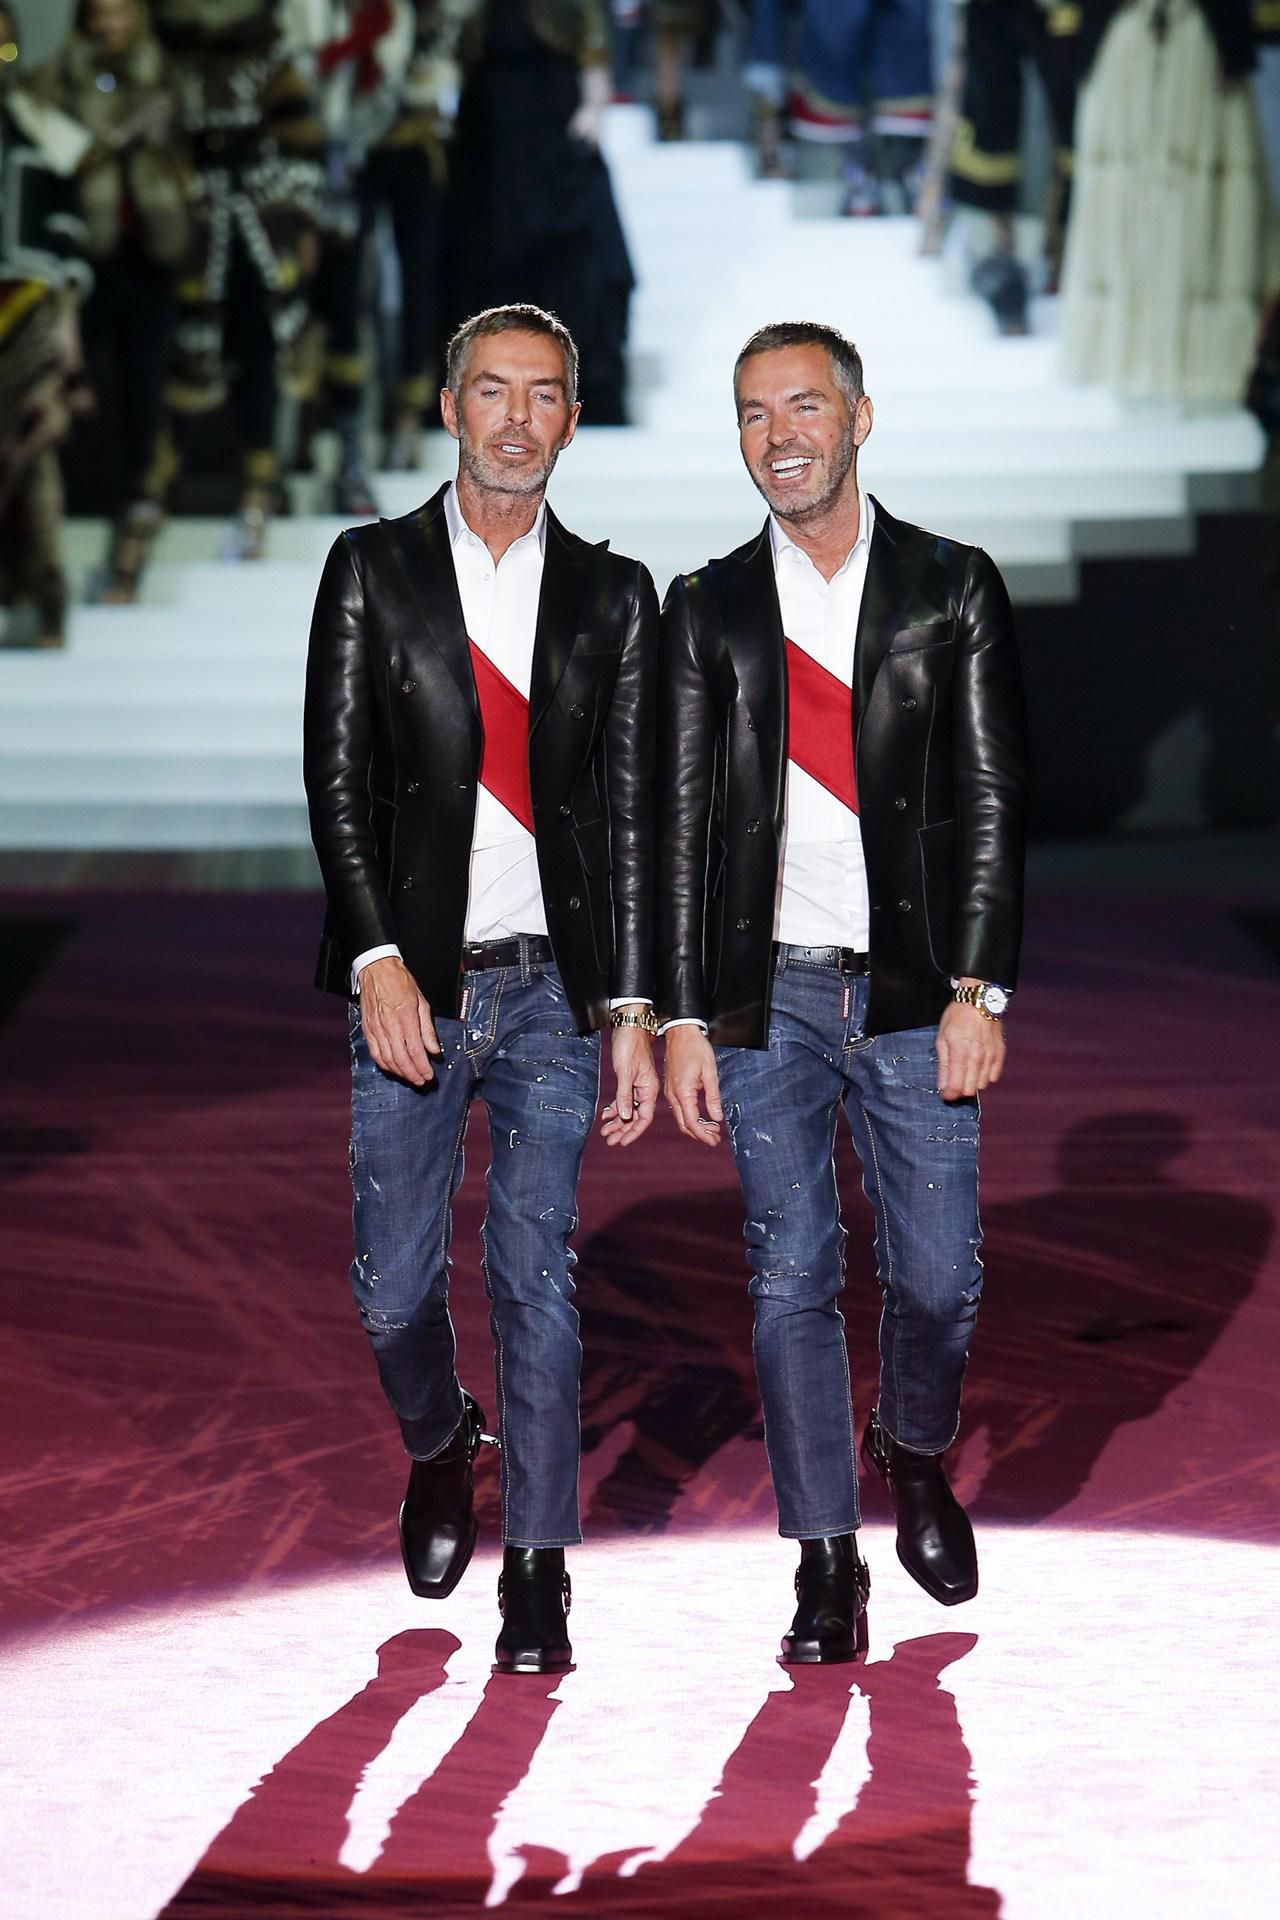 Ten minutes with fashion's most talkative twins - Dean and Dan Caten of @Dsquared2: http://t.co/wcDSUTv3qs http://t.co/RjidZZMa2i